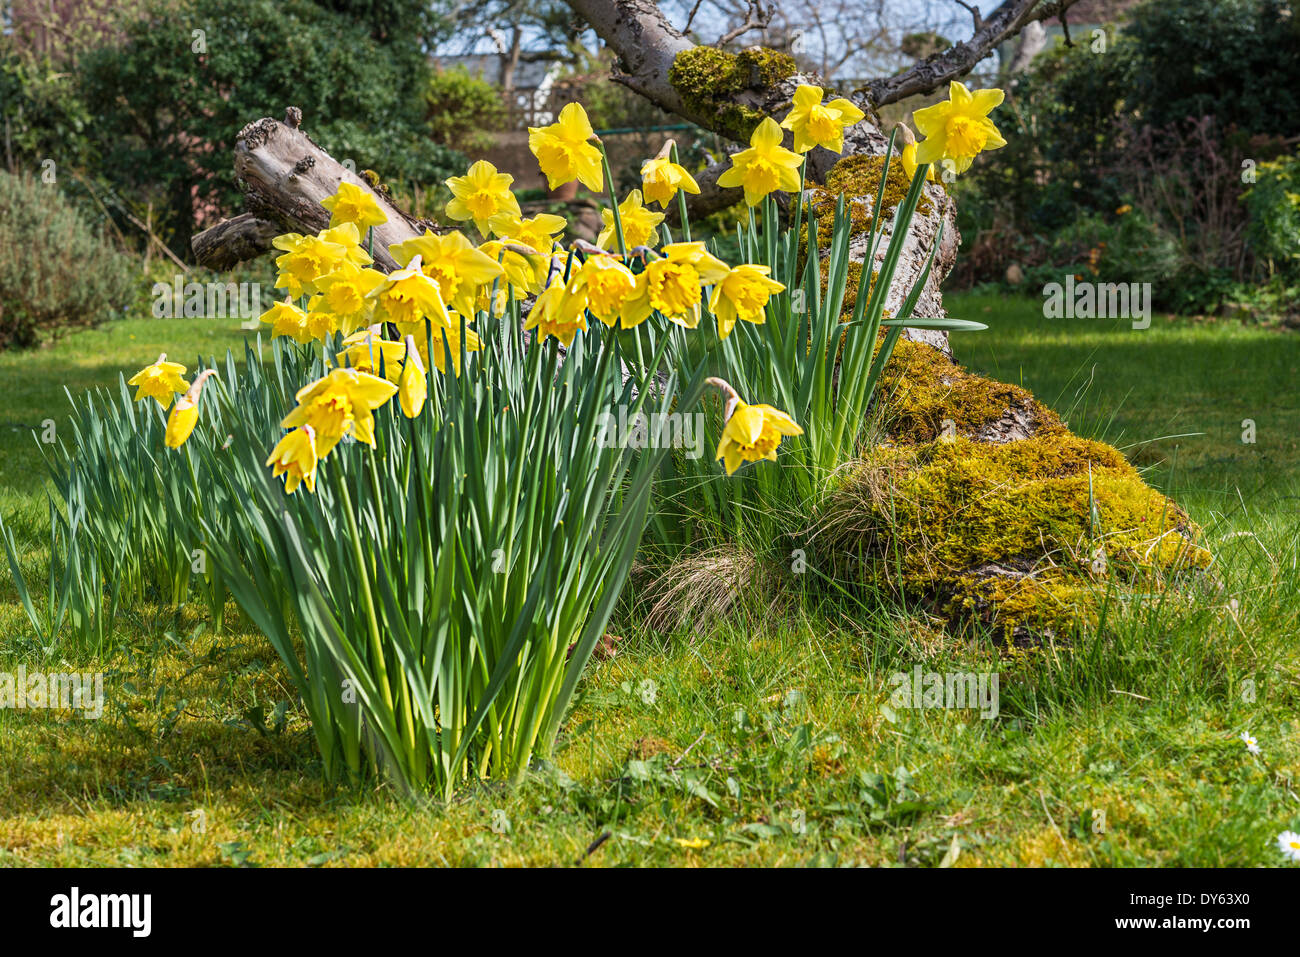 Daffodils growing in garden under old apple tree in spring. Ninth of sequence of 10 (ten) images photographed over five weeks. - Stock Image